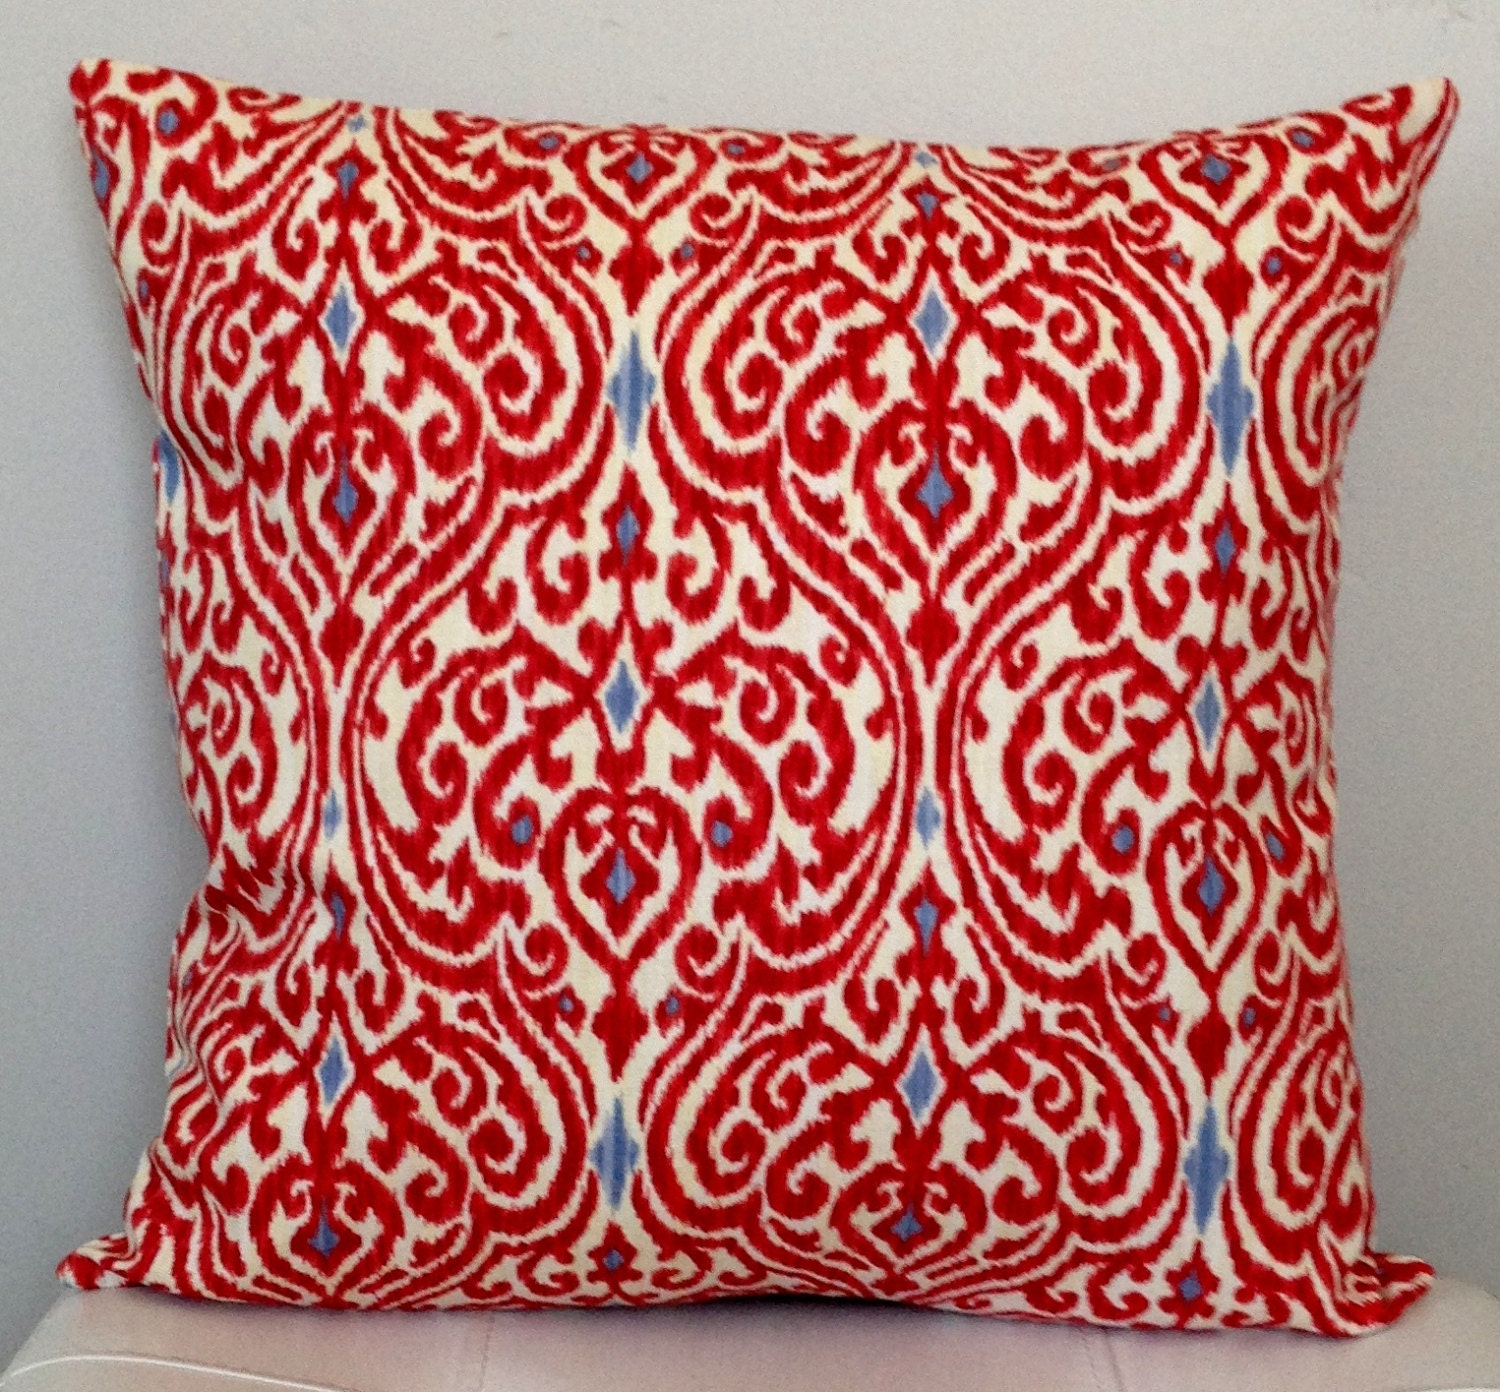 Ikat Throw Pillow Covers : CHRISTMAS PILLOW COVER Red Ikat Pillow Cover decorative